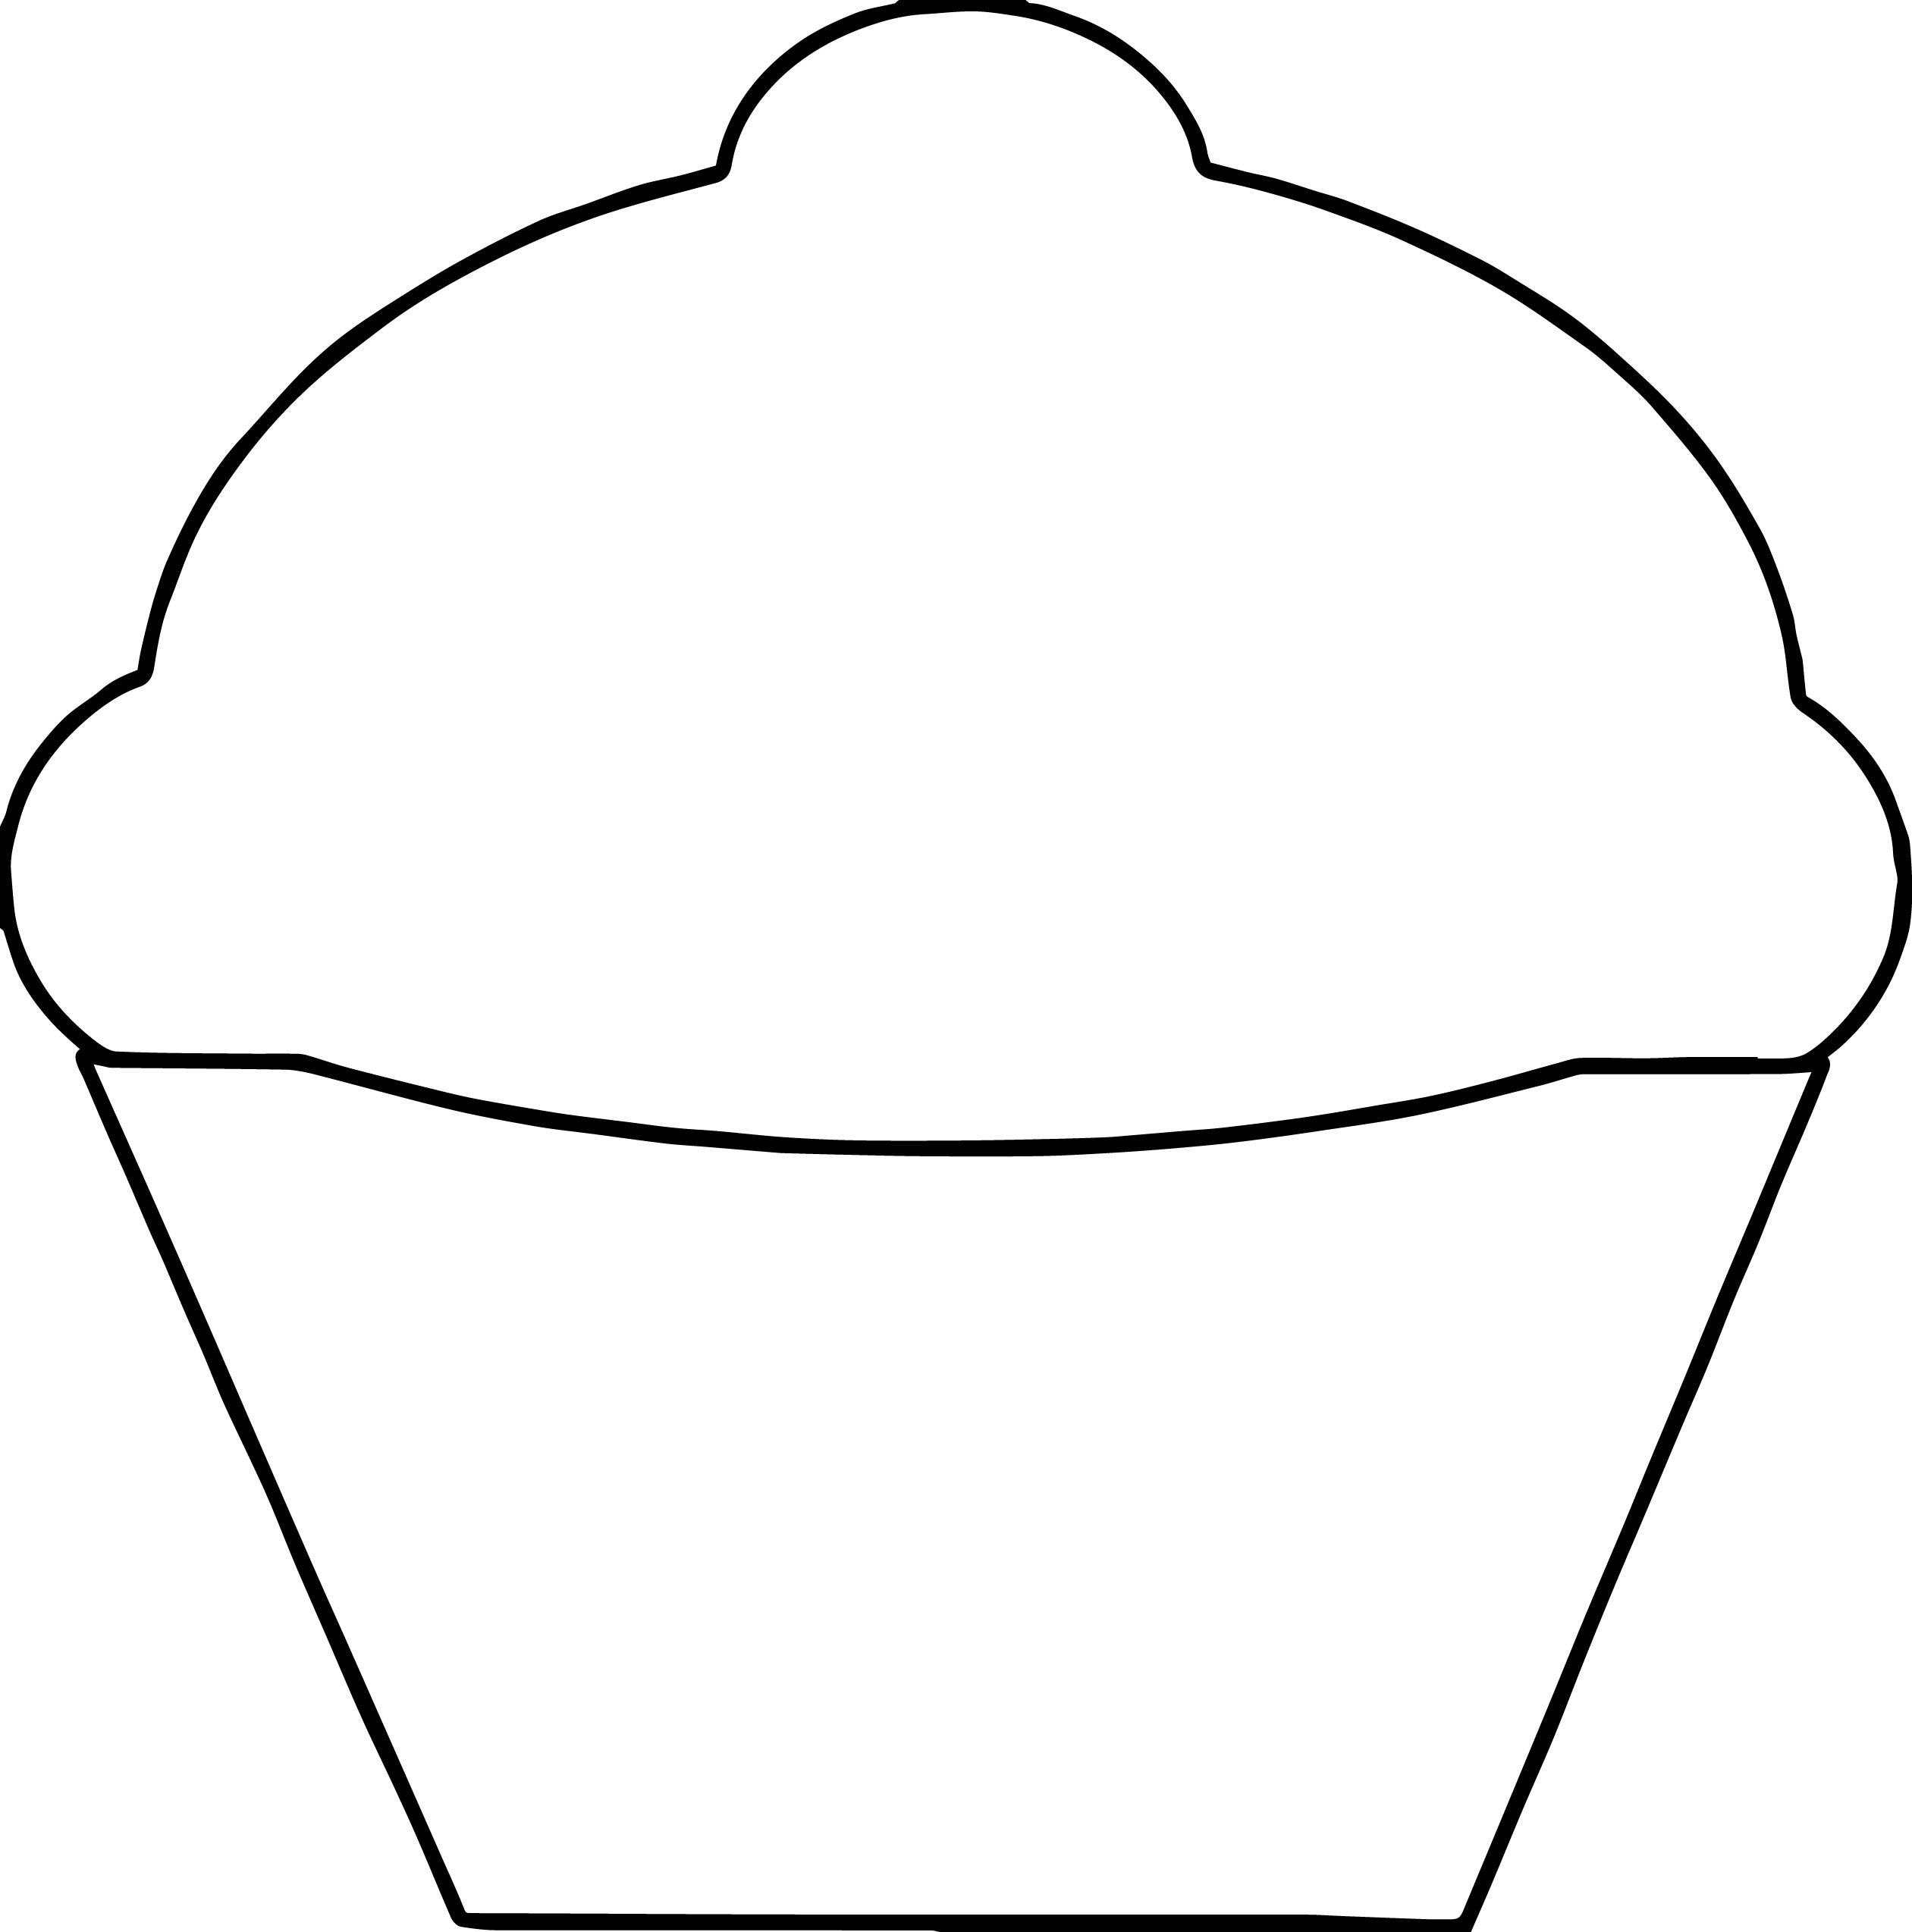 Basic Empty Cupcake Coloring Page Wecoloringpage